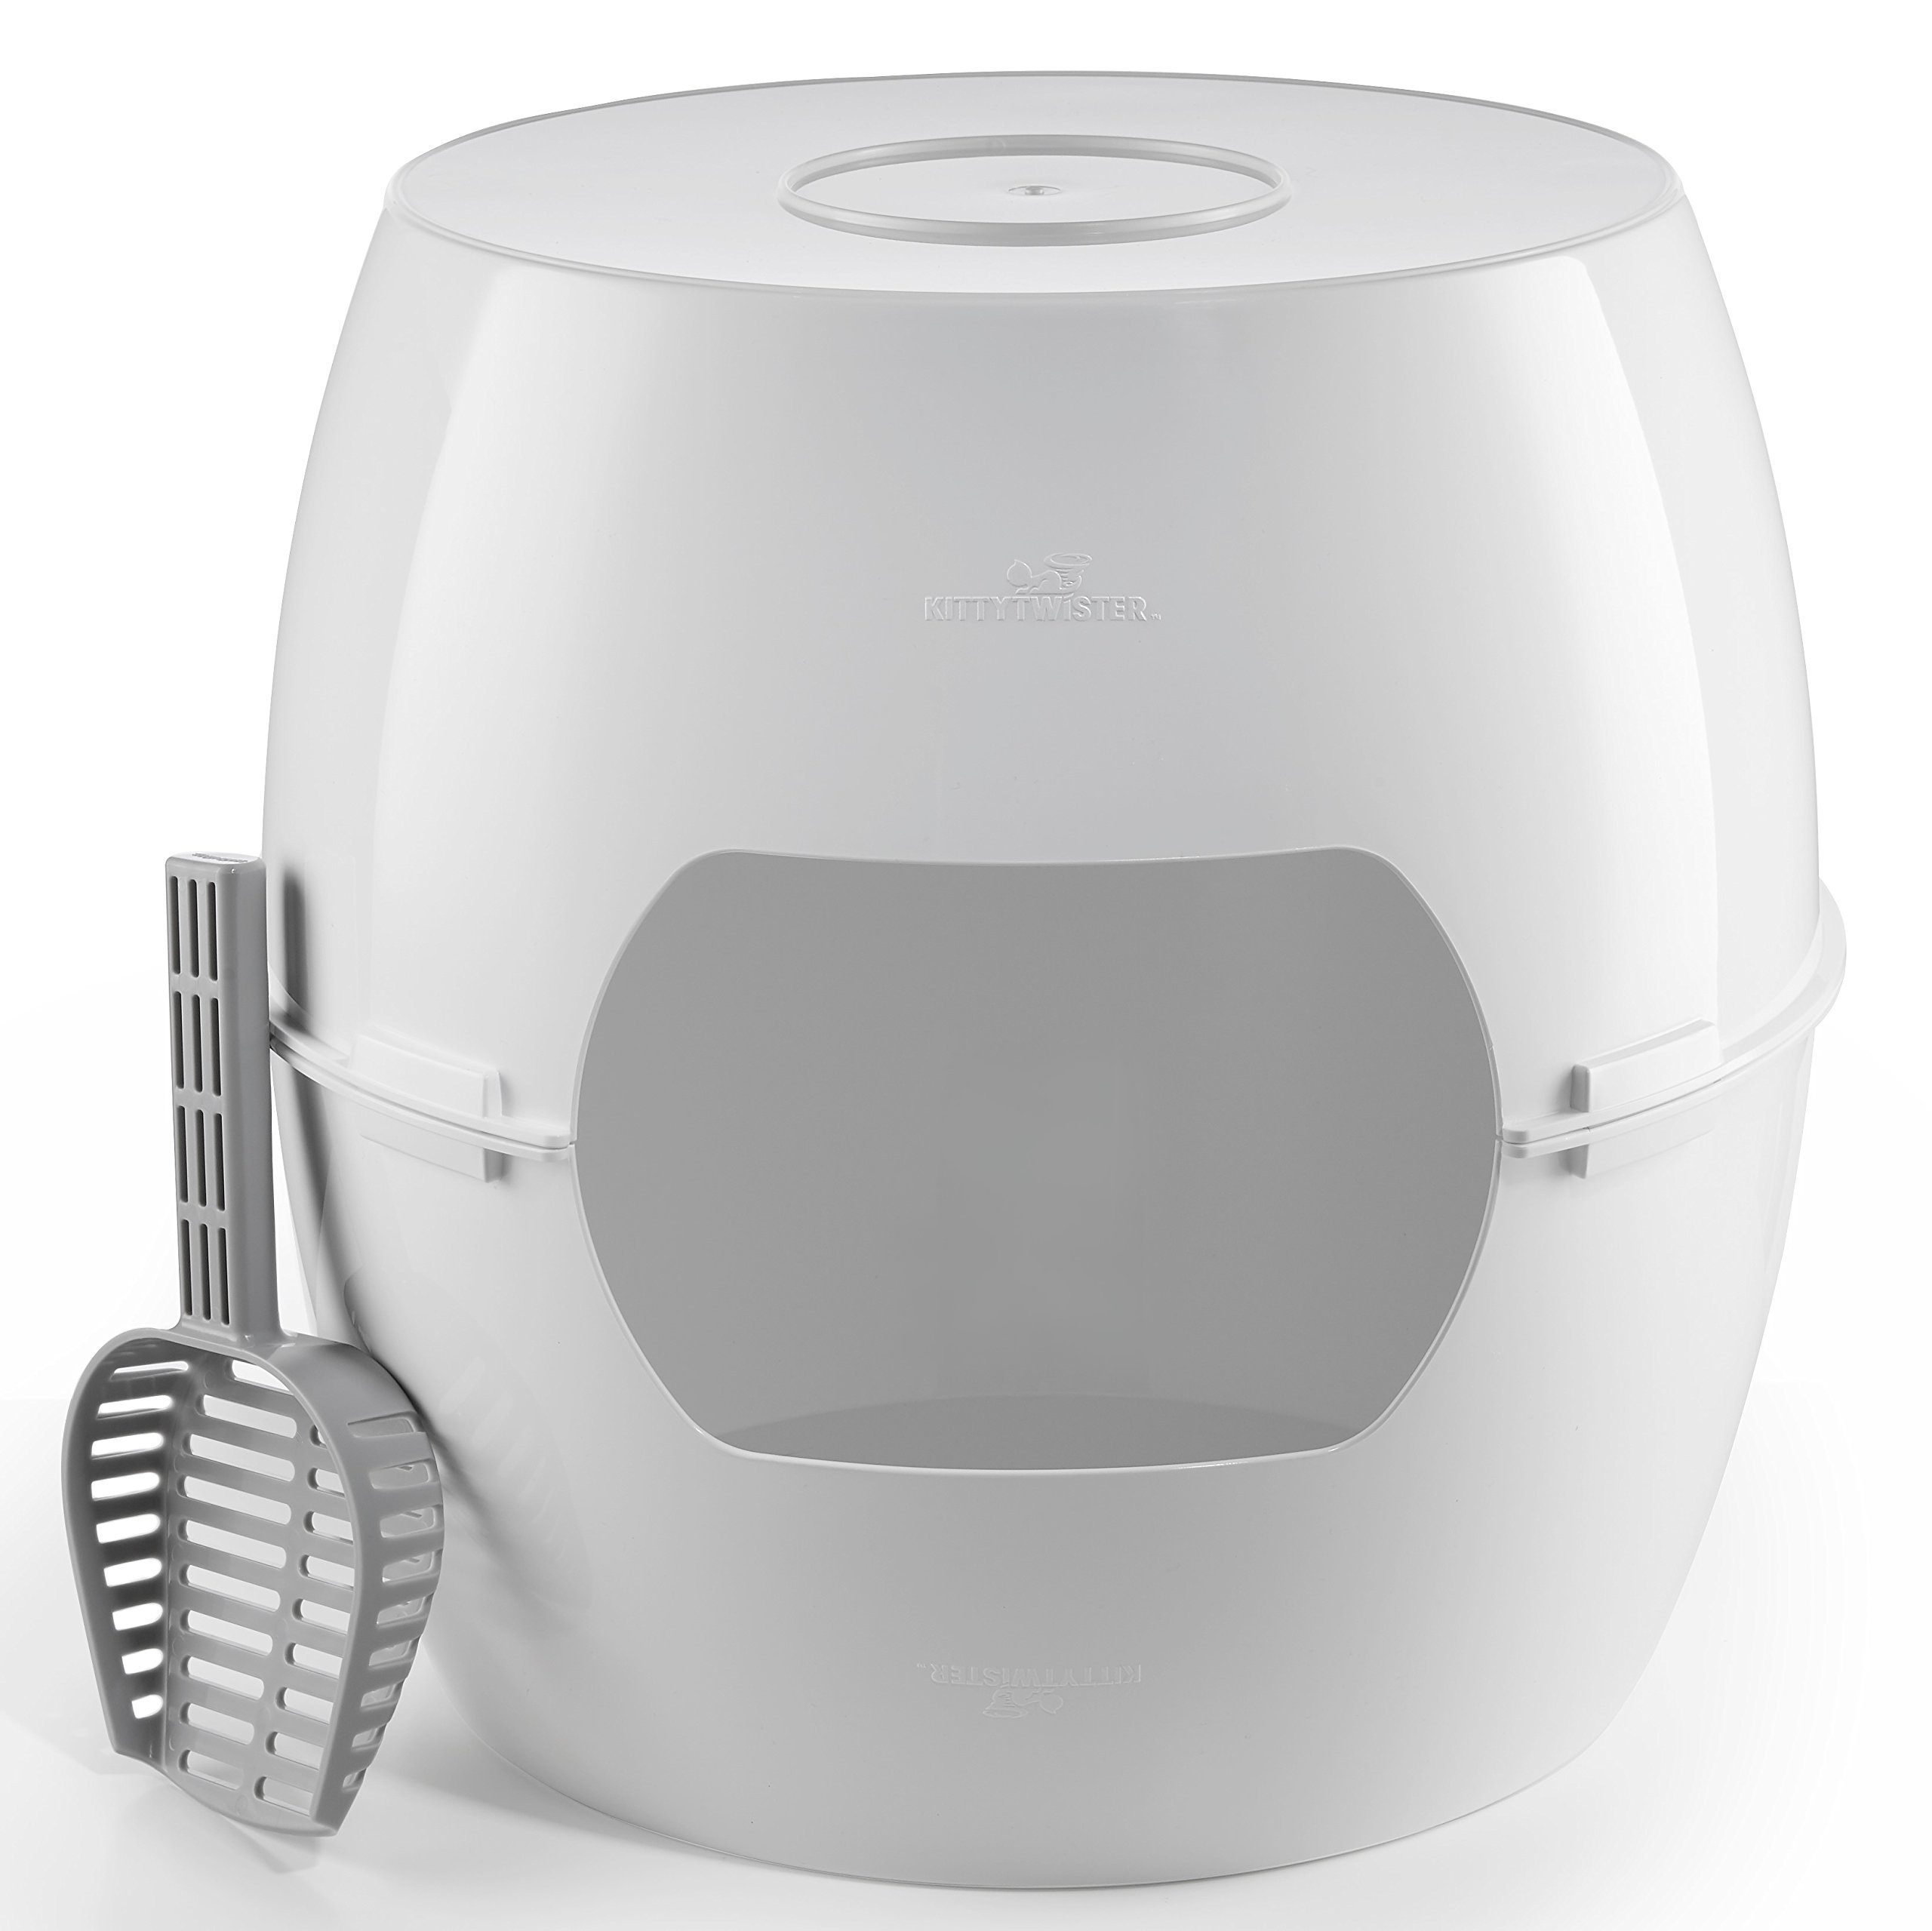 KittyTwister Duo: New - Premium Quality, Stylish, and Versatile 3 in 1 Large & Tall Litter Box Complete with Scoop Ease Scoop.